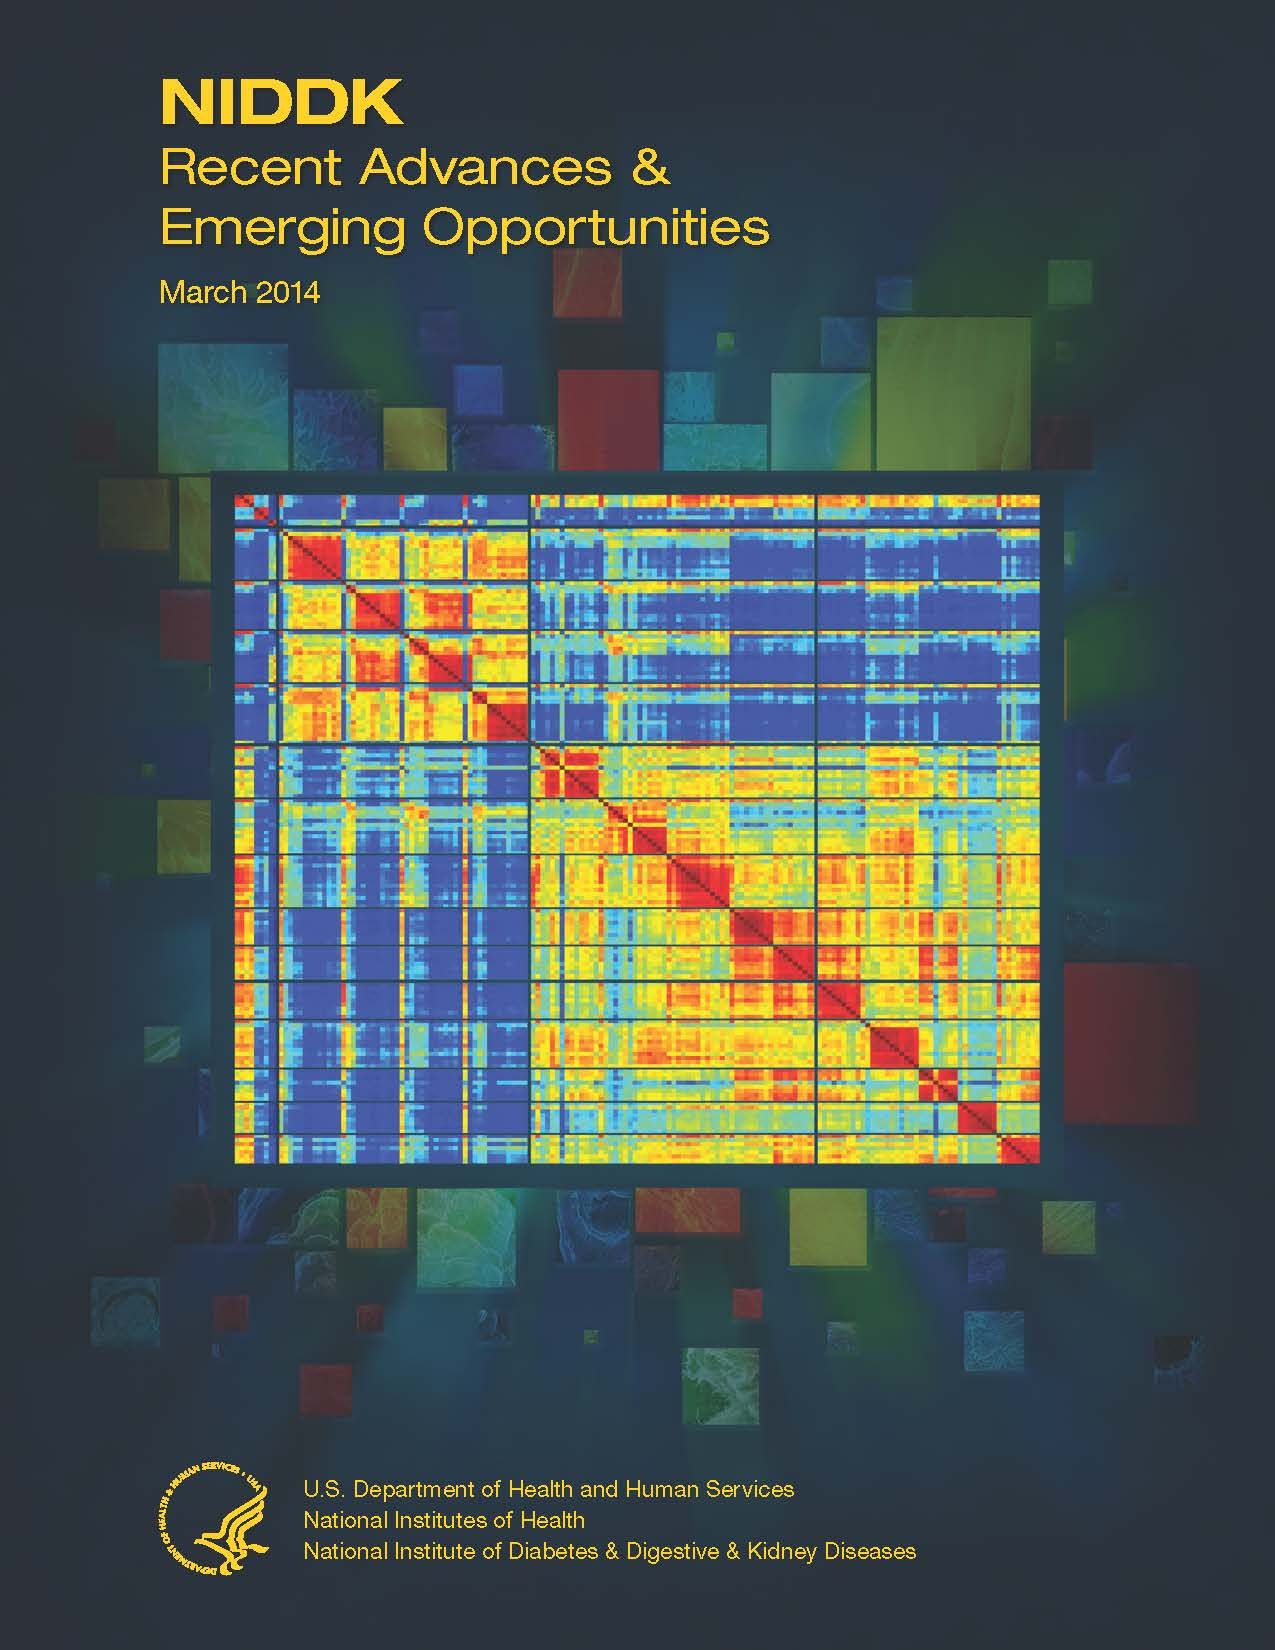 Thumbnail cover image of NIDDK Recent Advances and Emerging Opportunities March 2014 edition